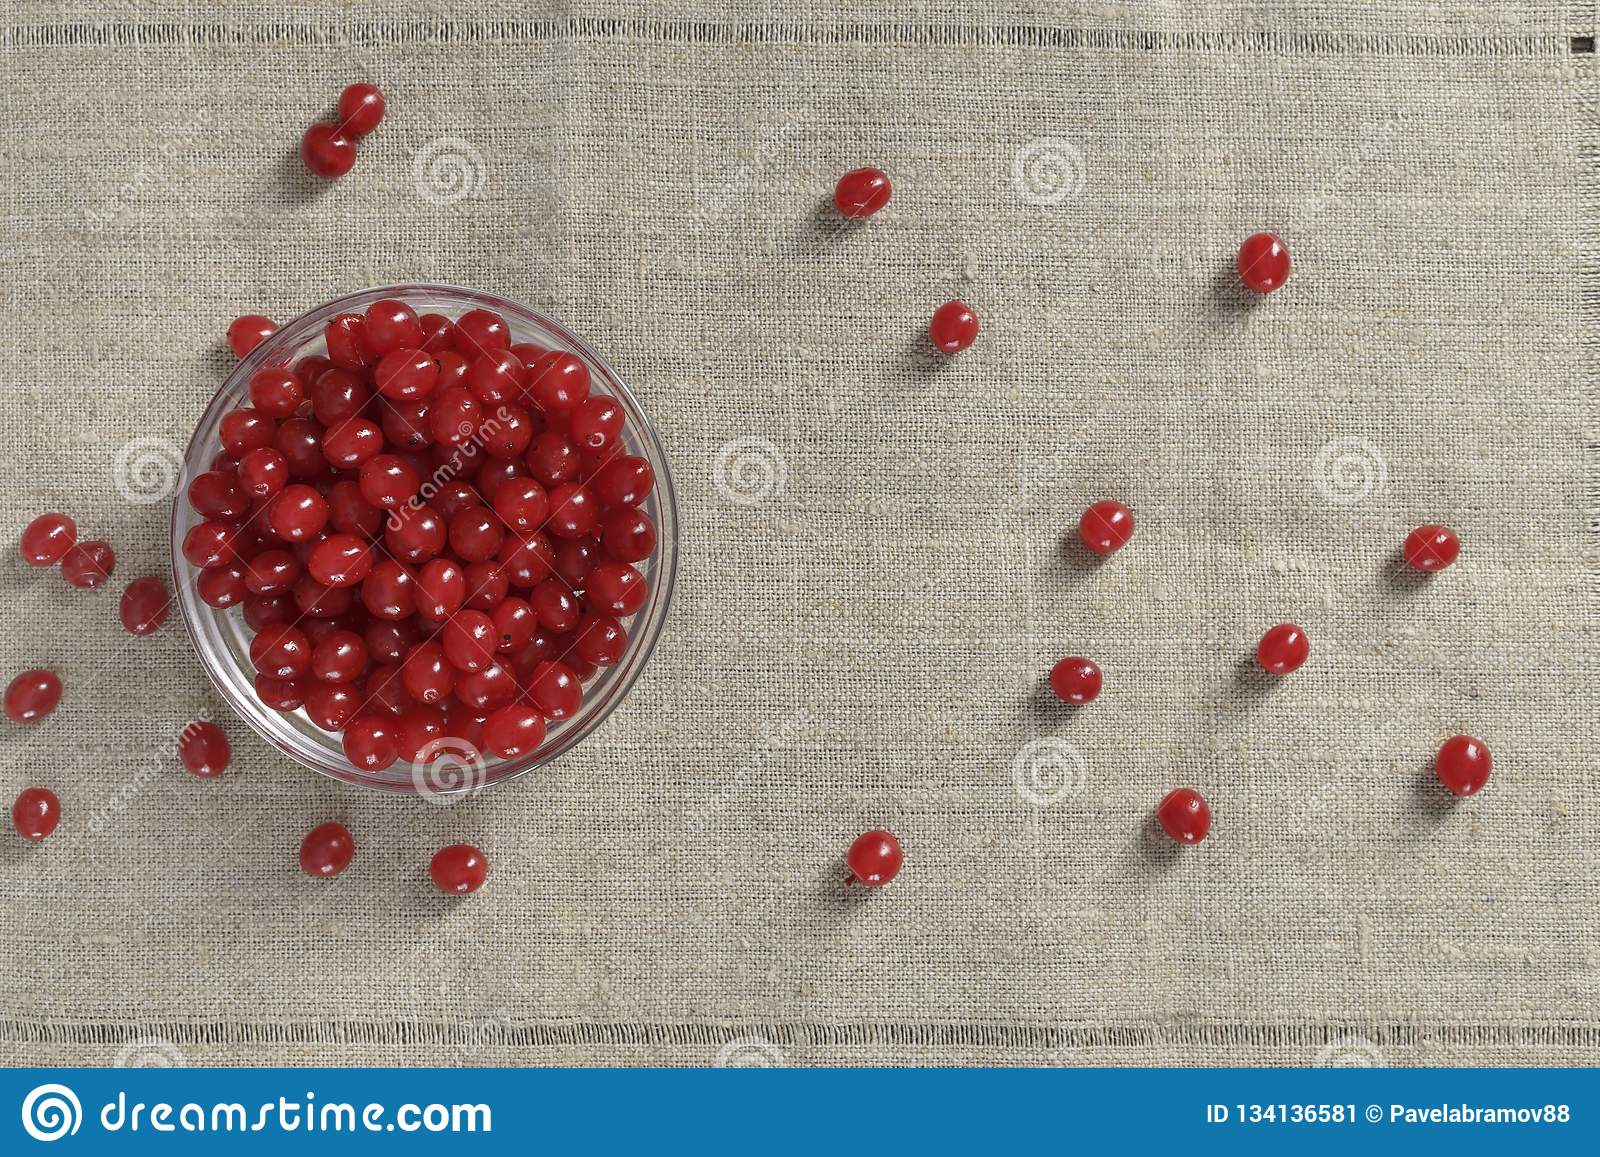 Red berries in a Cup